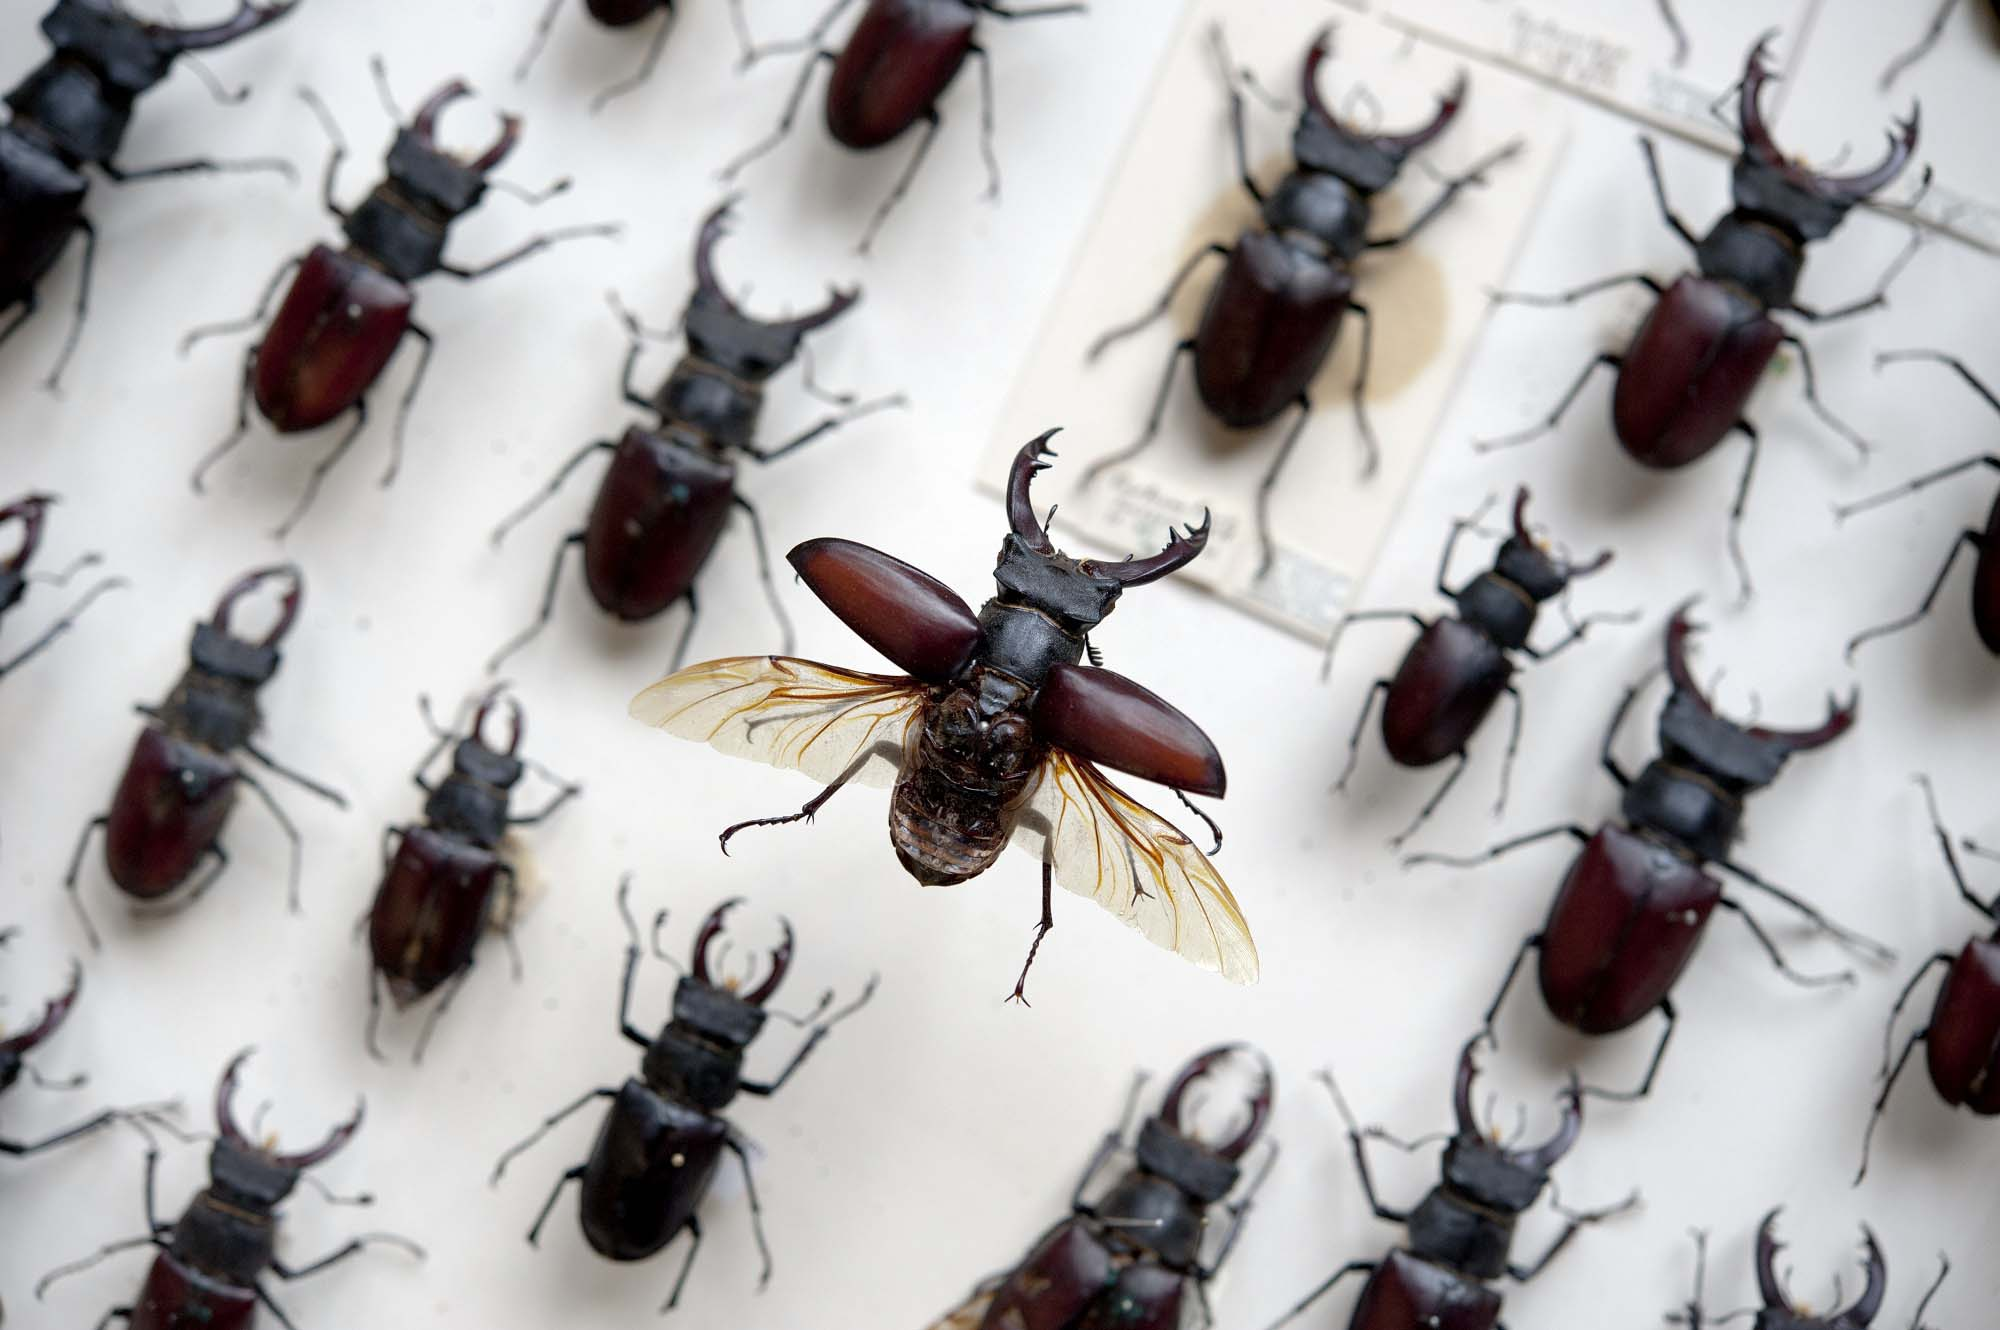 a photo of a case of stag beetles